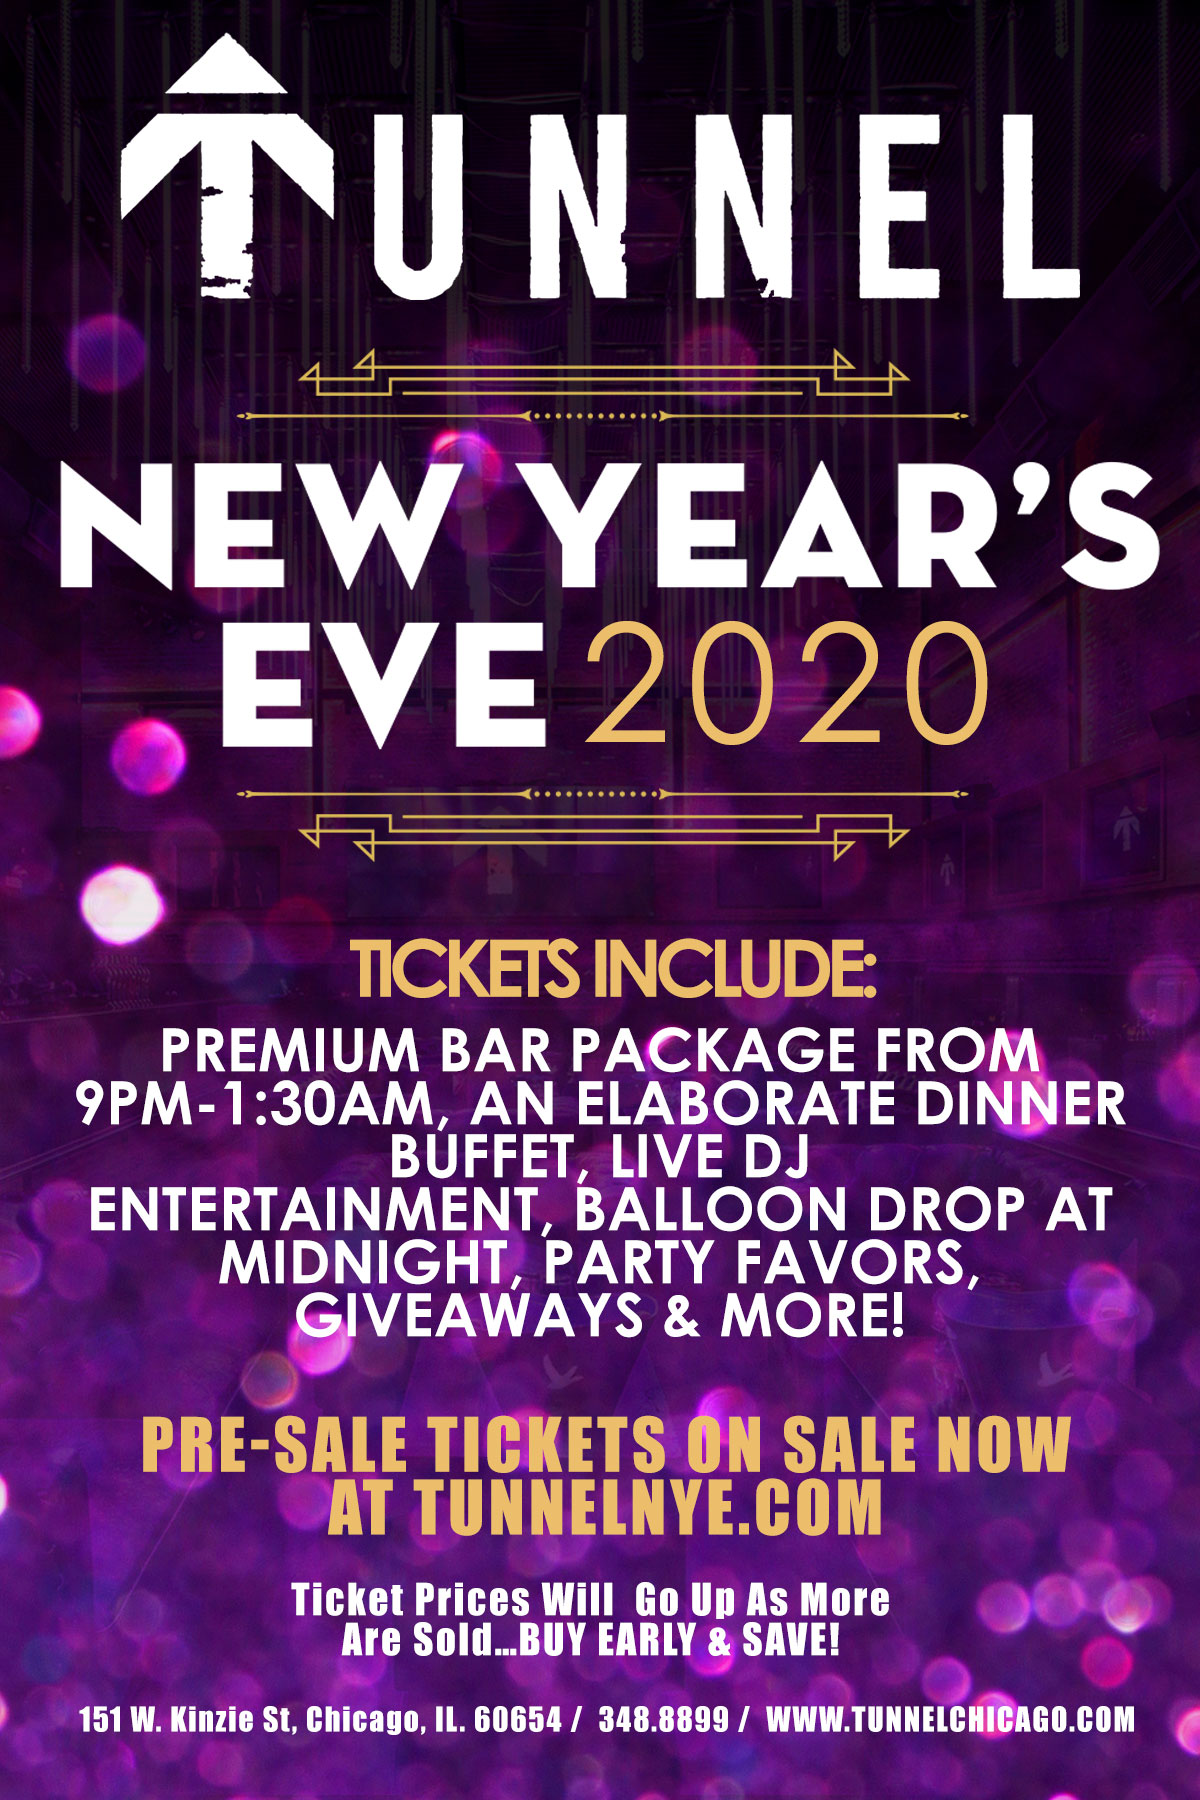 Tunnel New Year's Eve Party - Tickets Include A Premium Bar Package From 9pm-1:30am, An Elaborate Dinner Buffet, Live DJ Entertainment, Balloon Drop at Midnight, Party Favors, Giveaways & More!